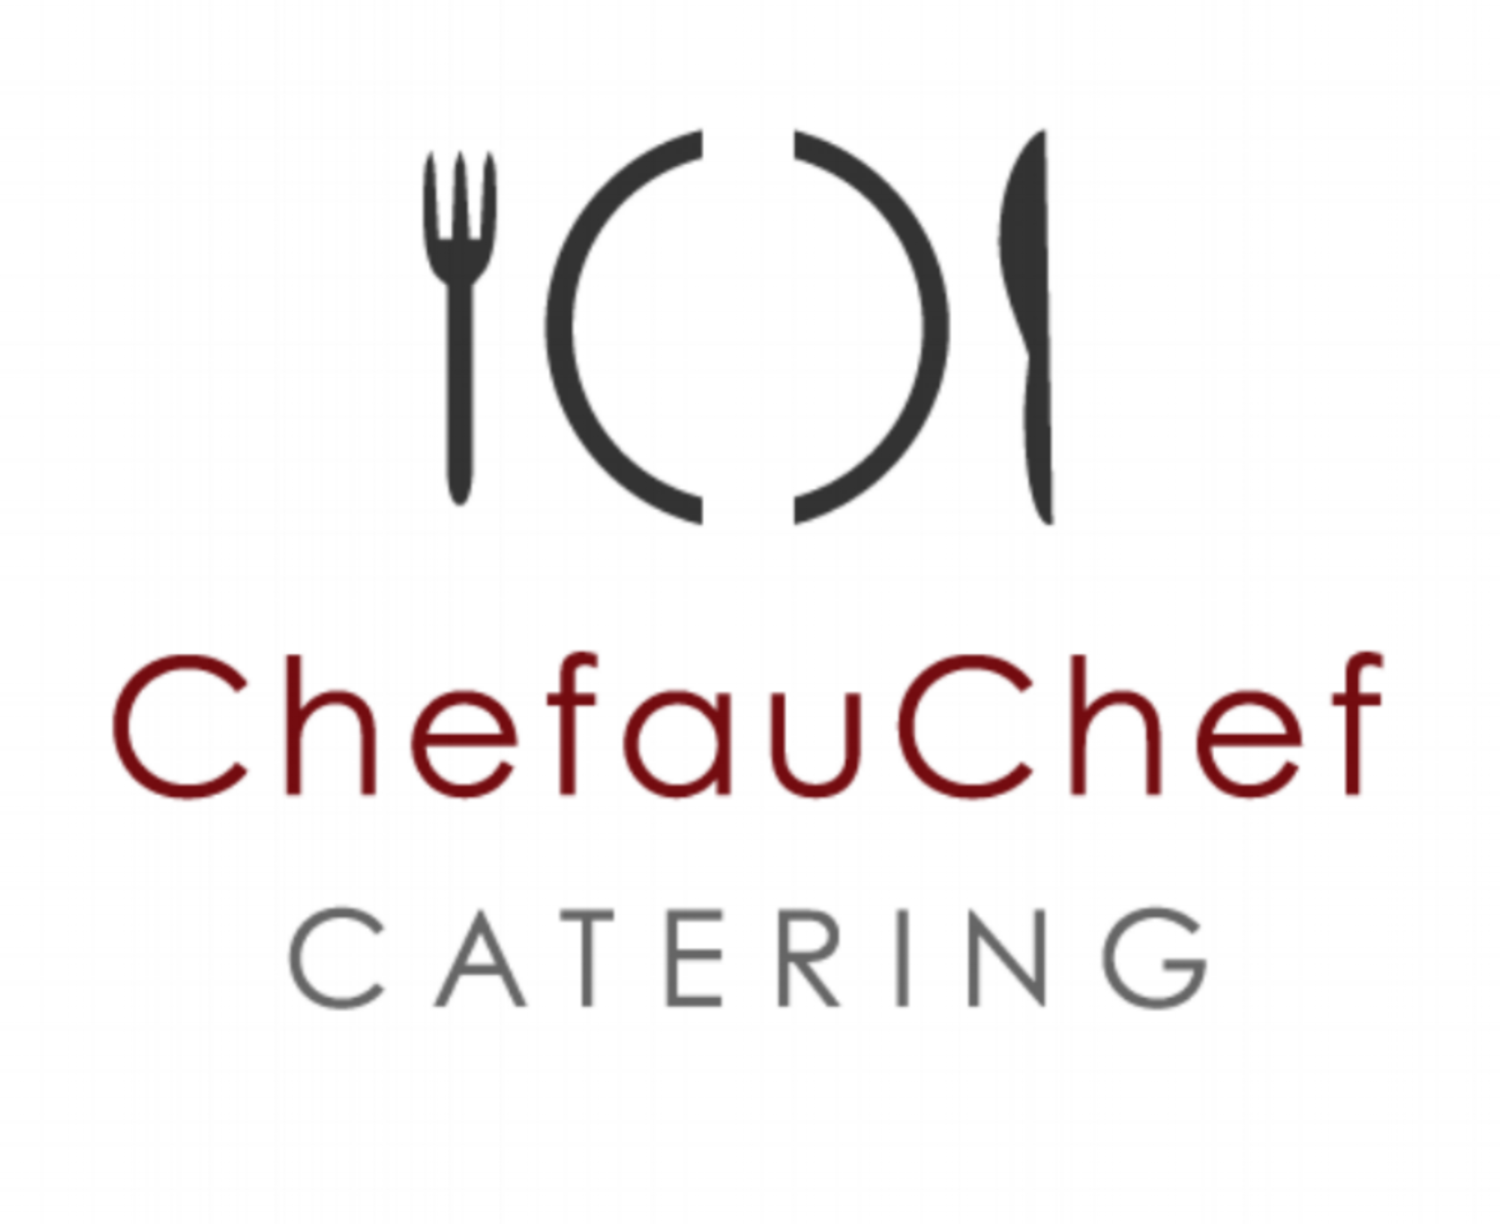 ChefauChef Catering